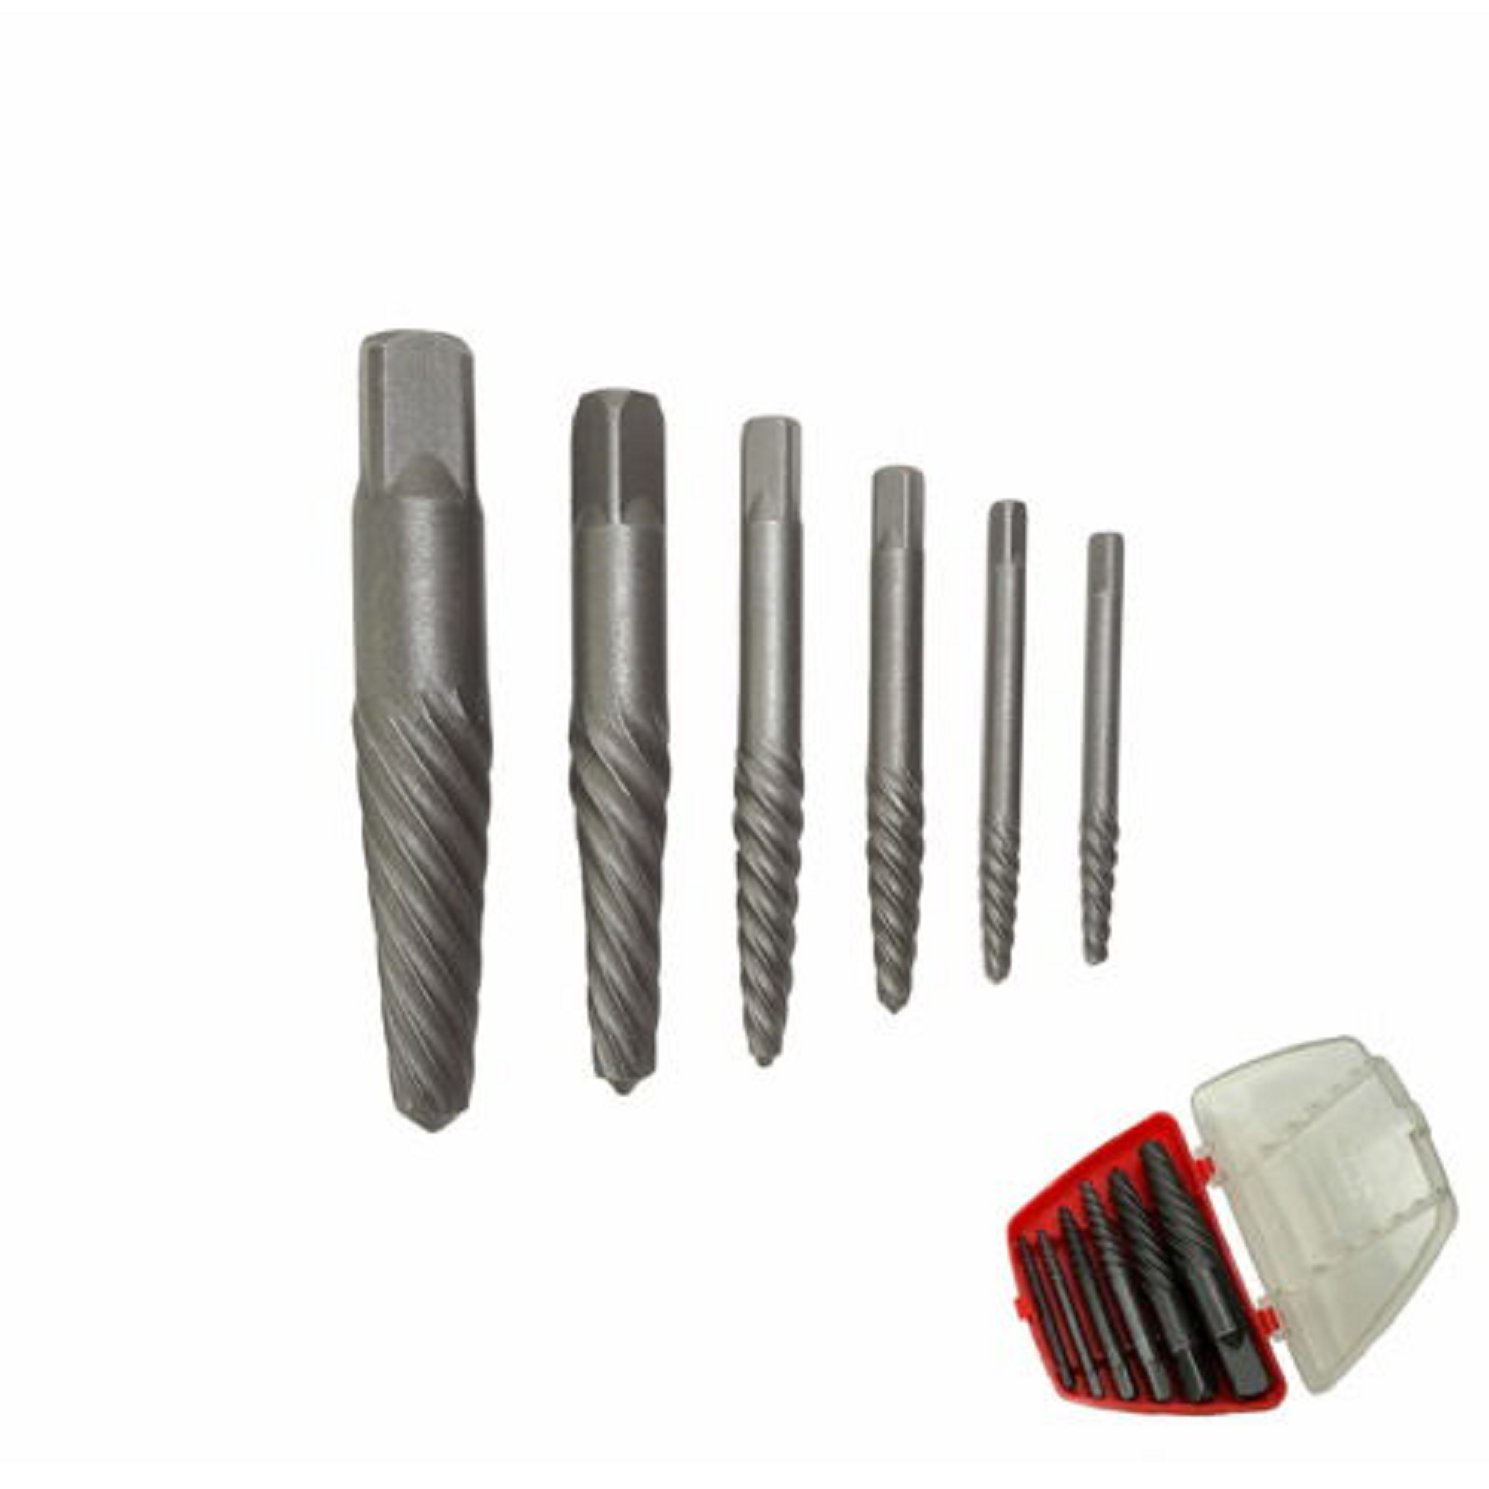 USA Premium Store 6 PC SCREW EXTRACTOR KIT SET BROKEN BOLT REMOVAL TOOL EASY EZ OUTS LAG SHANK BIT